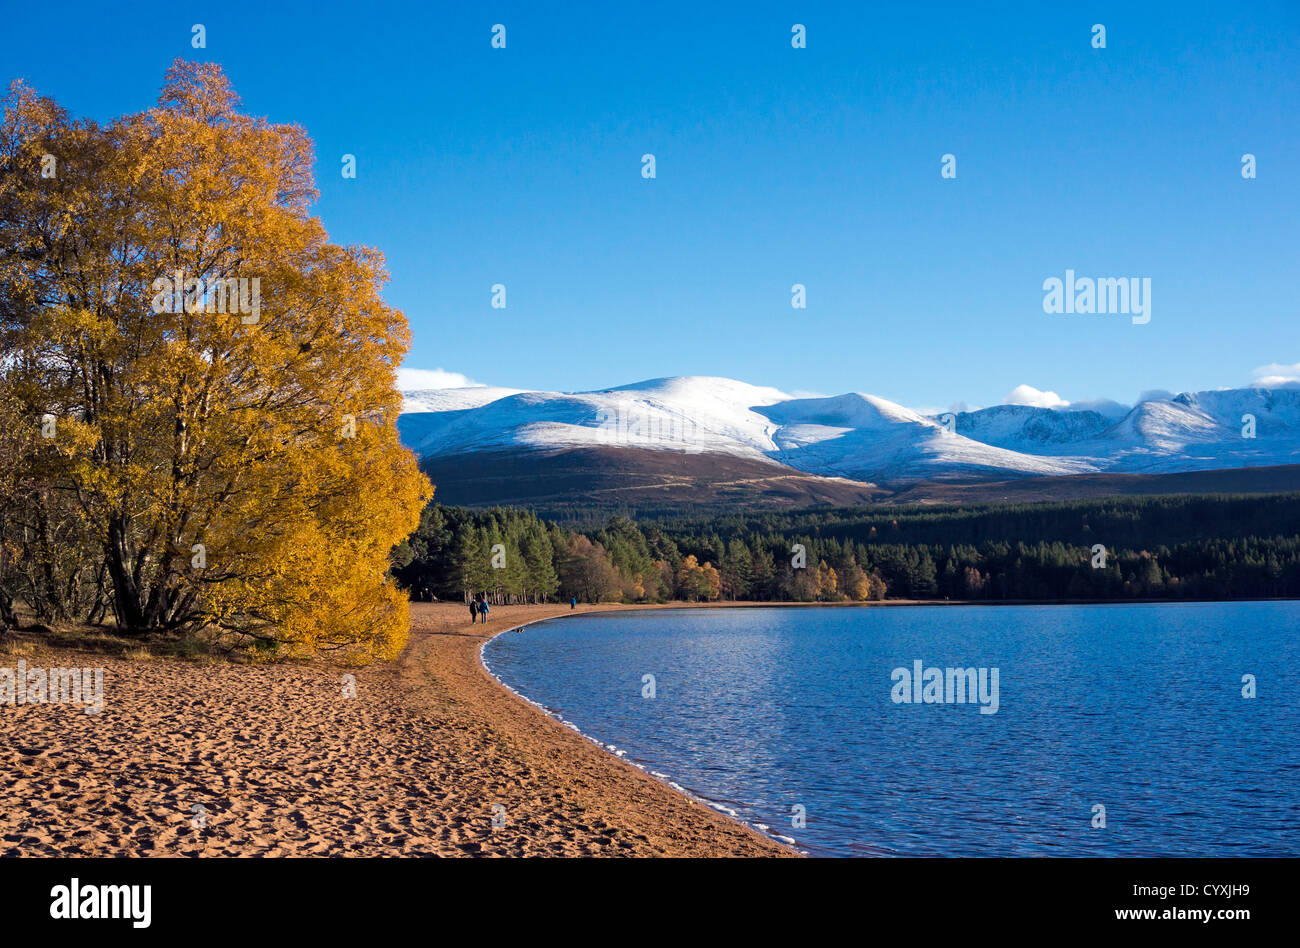 Loch Morlich in the Cairngorms region of Scotland on a calm and sunny autumn day with snow covered Cairn Gorm  mountain - Stock Image